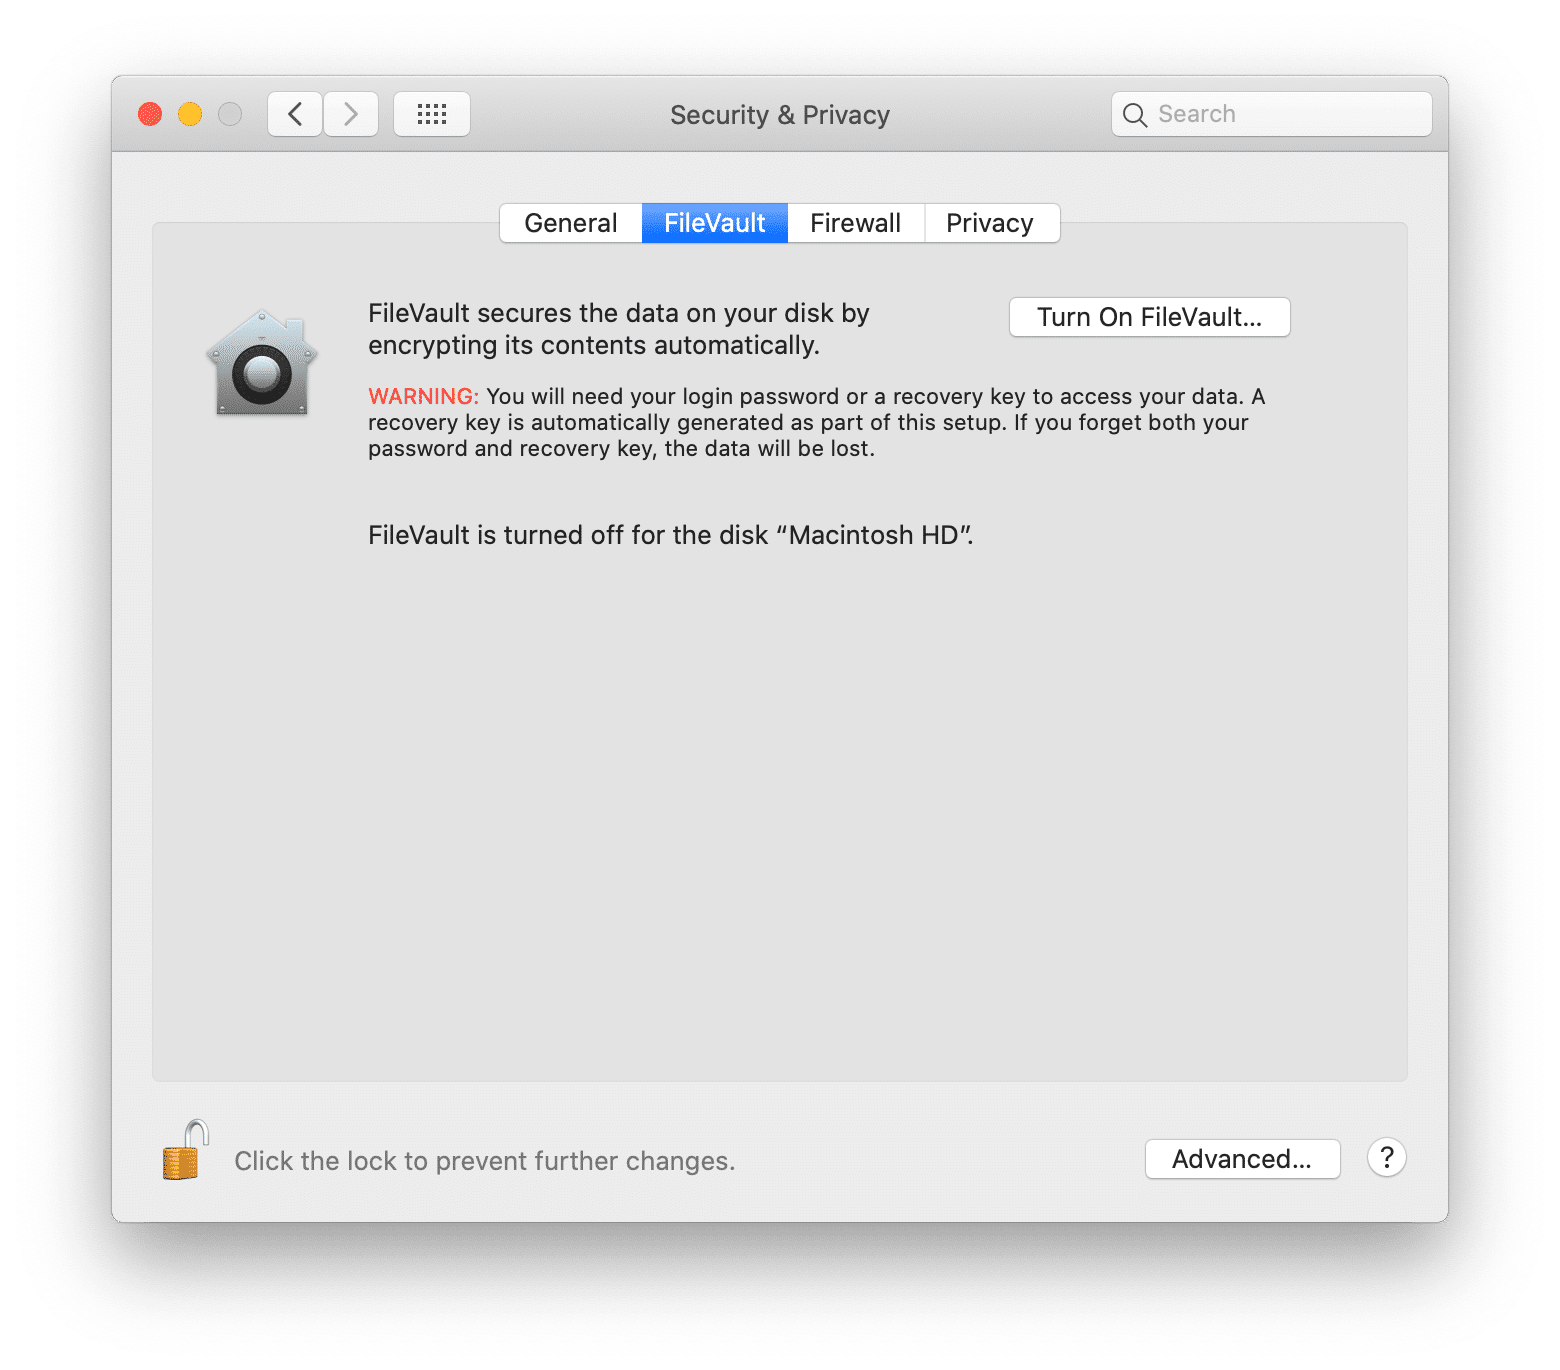 FileVault panel at Security & Privacy preferences window